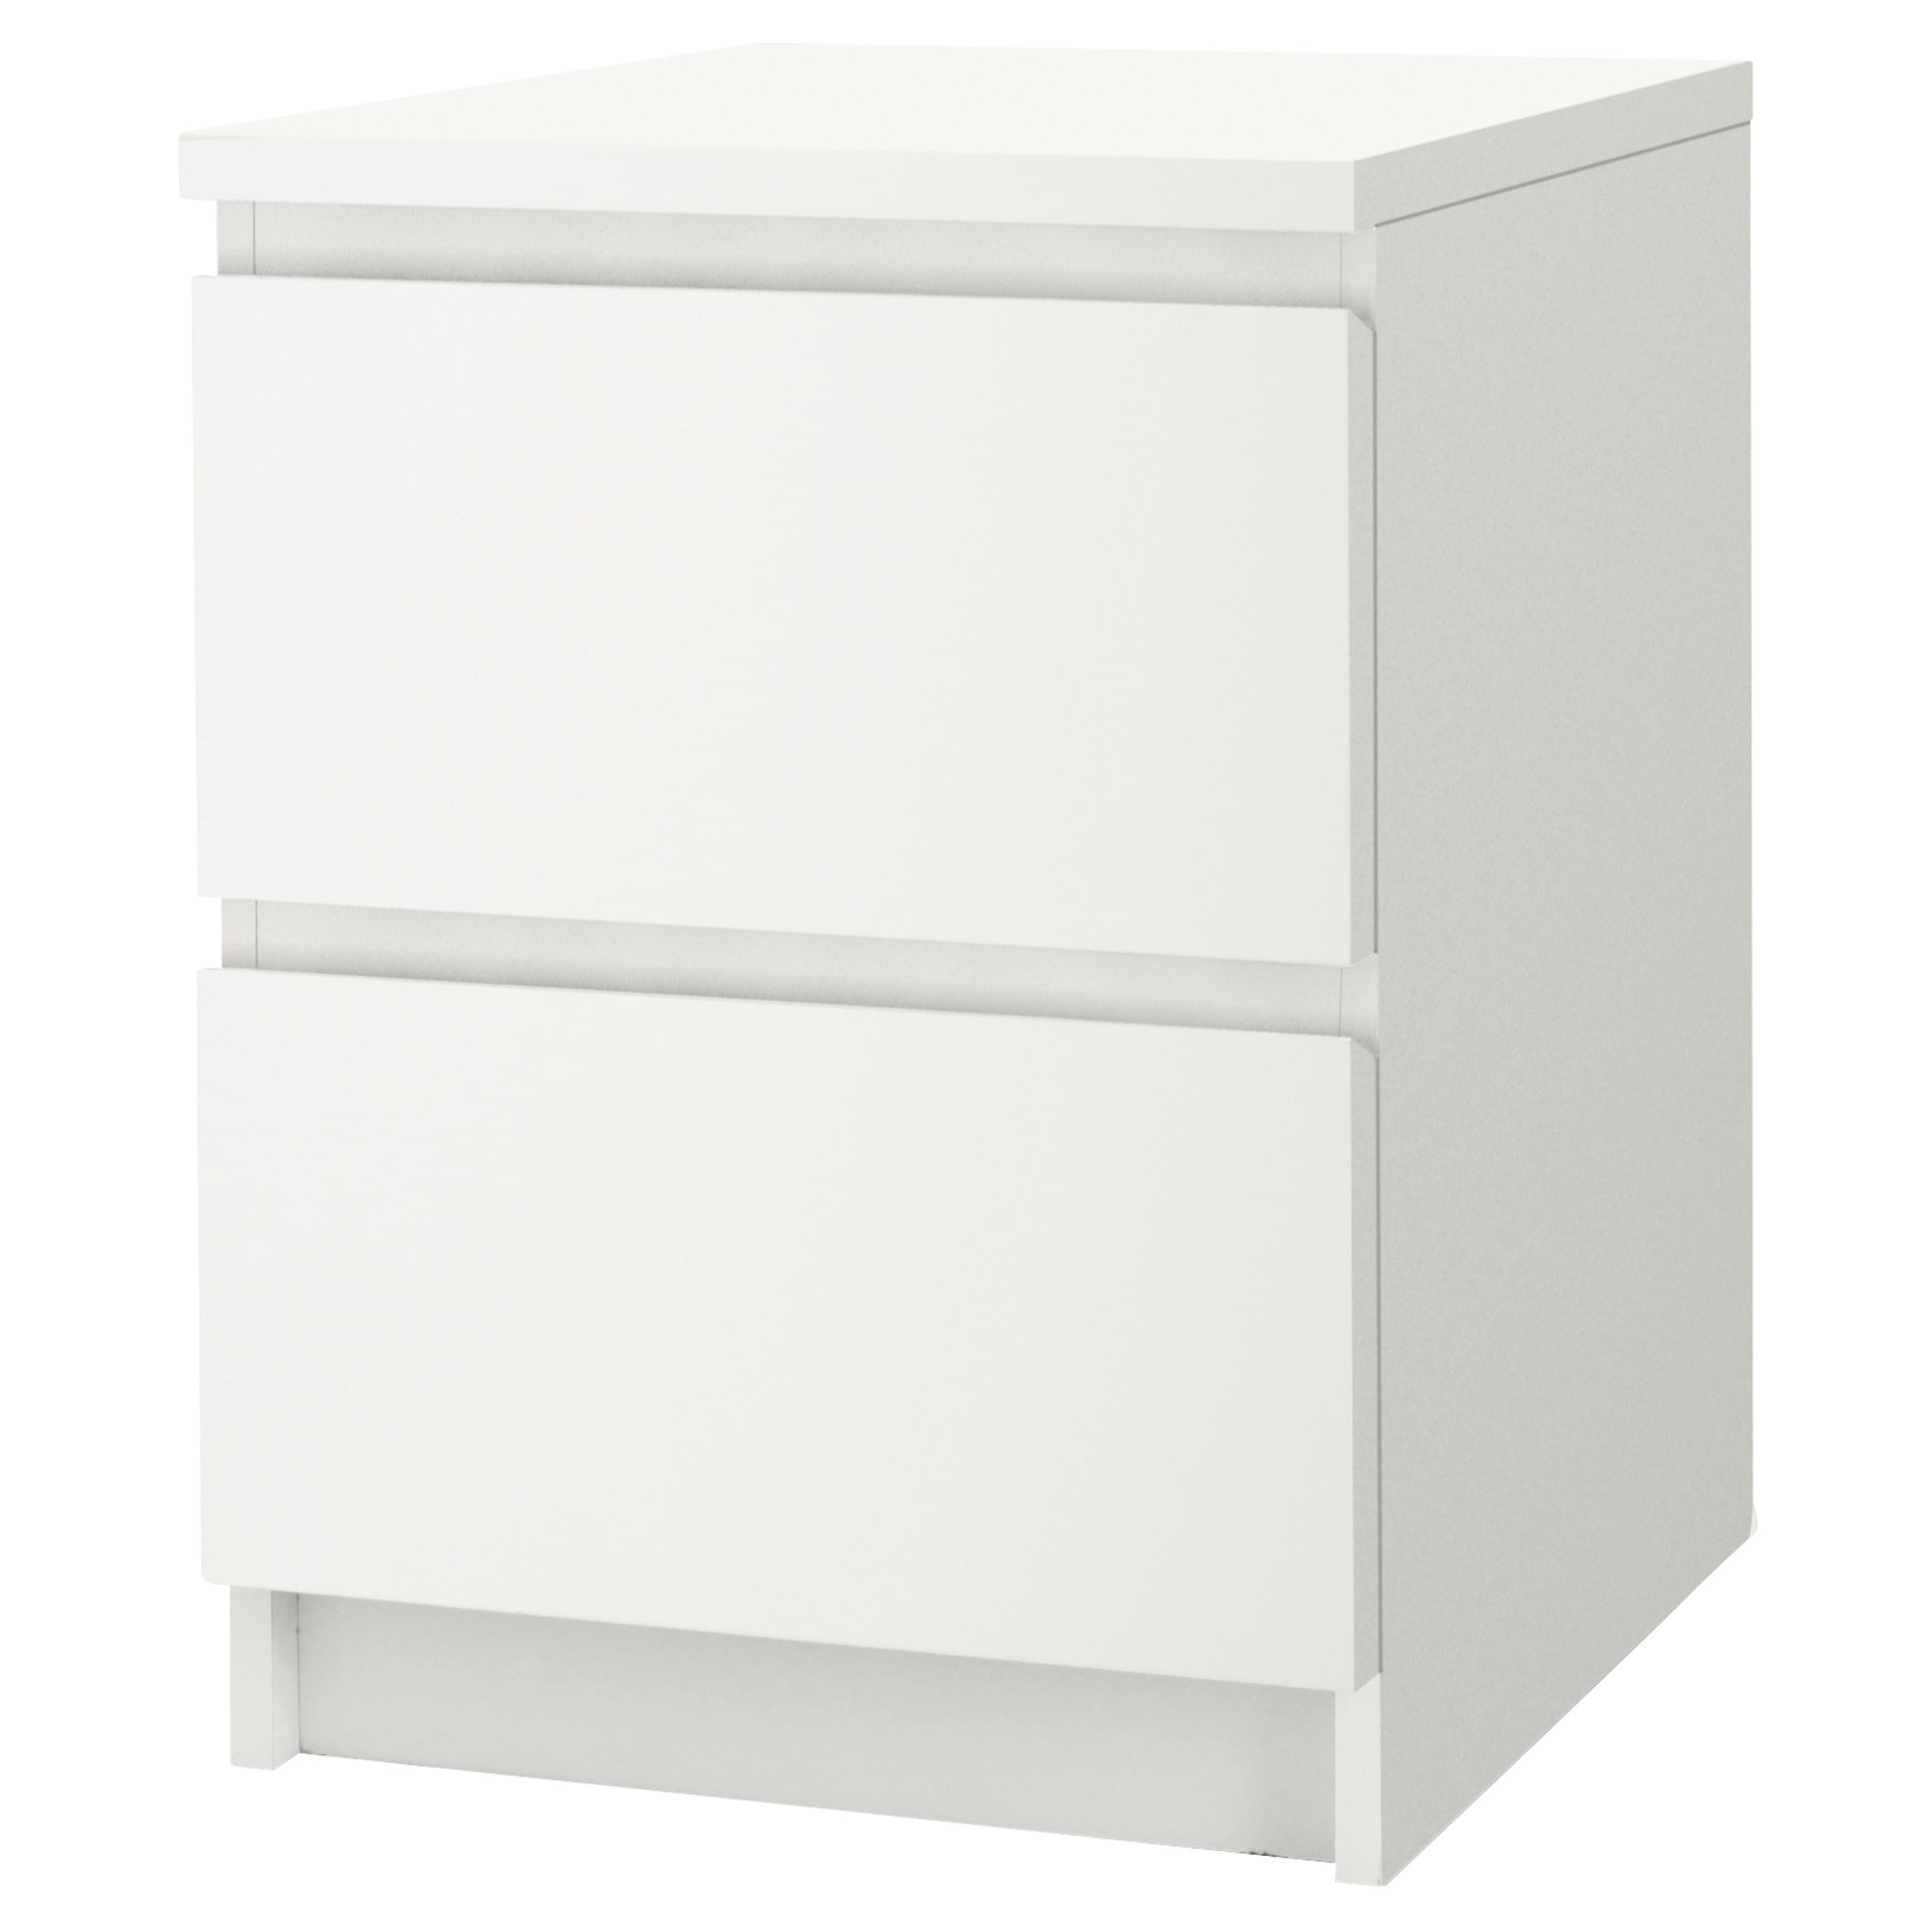 bedroom table furniture baby sale occasional at hemnes ikea for cabinets lingerie targ nightstand cheap dresser chest dimensions target bedside dressers white malm